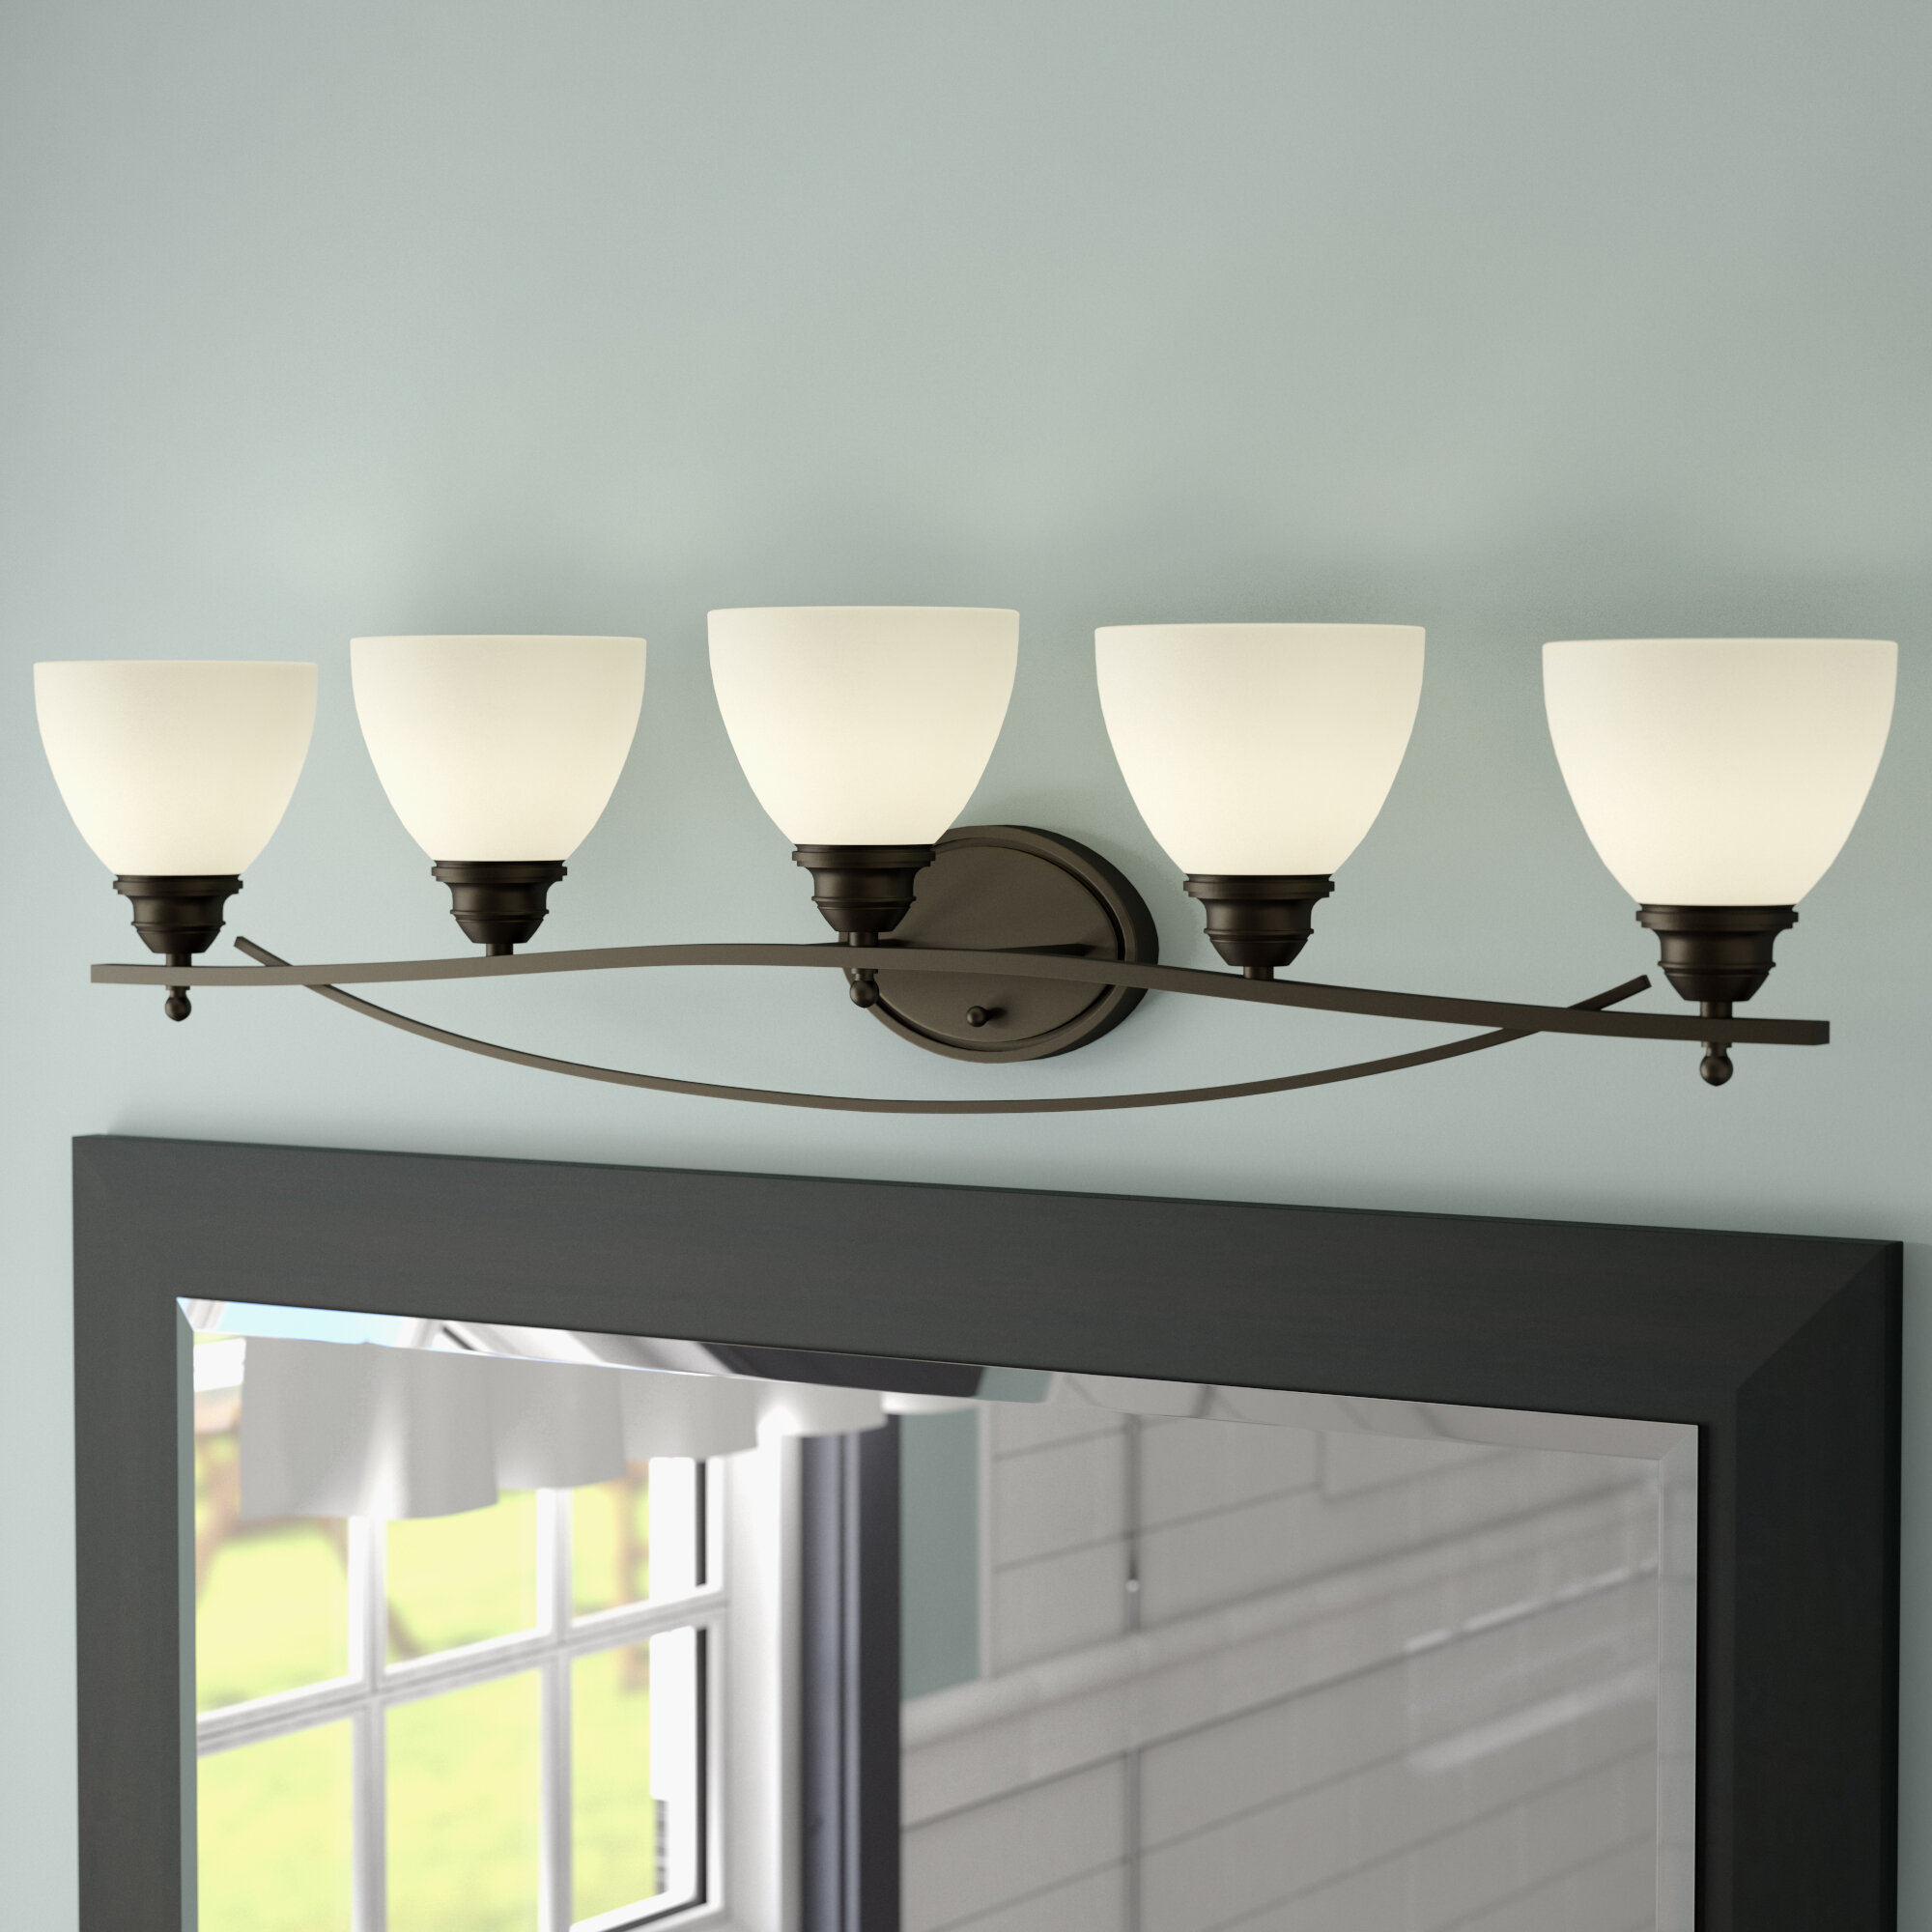 Charlton home maeystown 5 light vanity light reviews wayfair